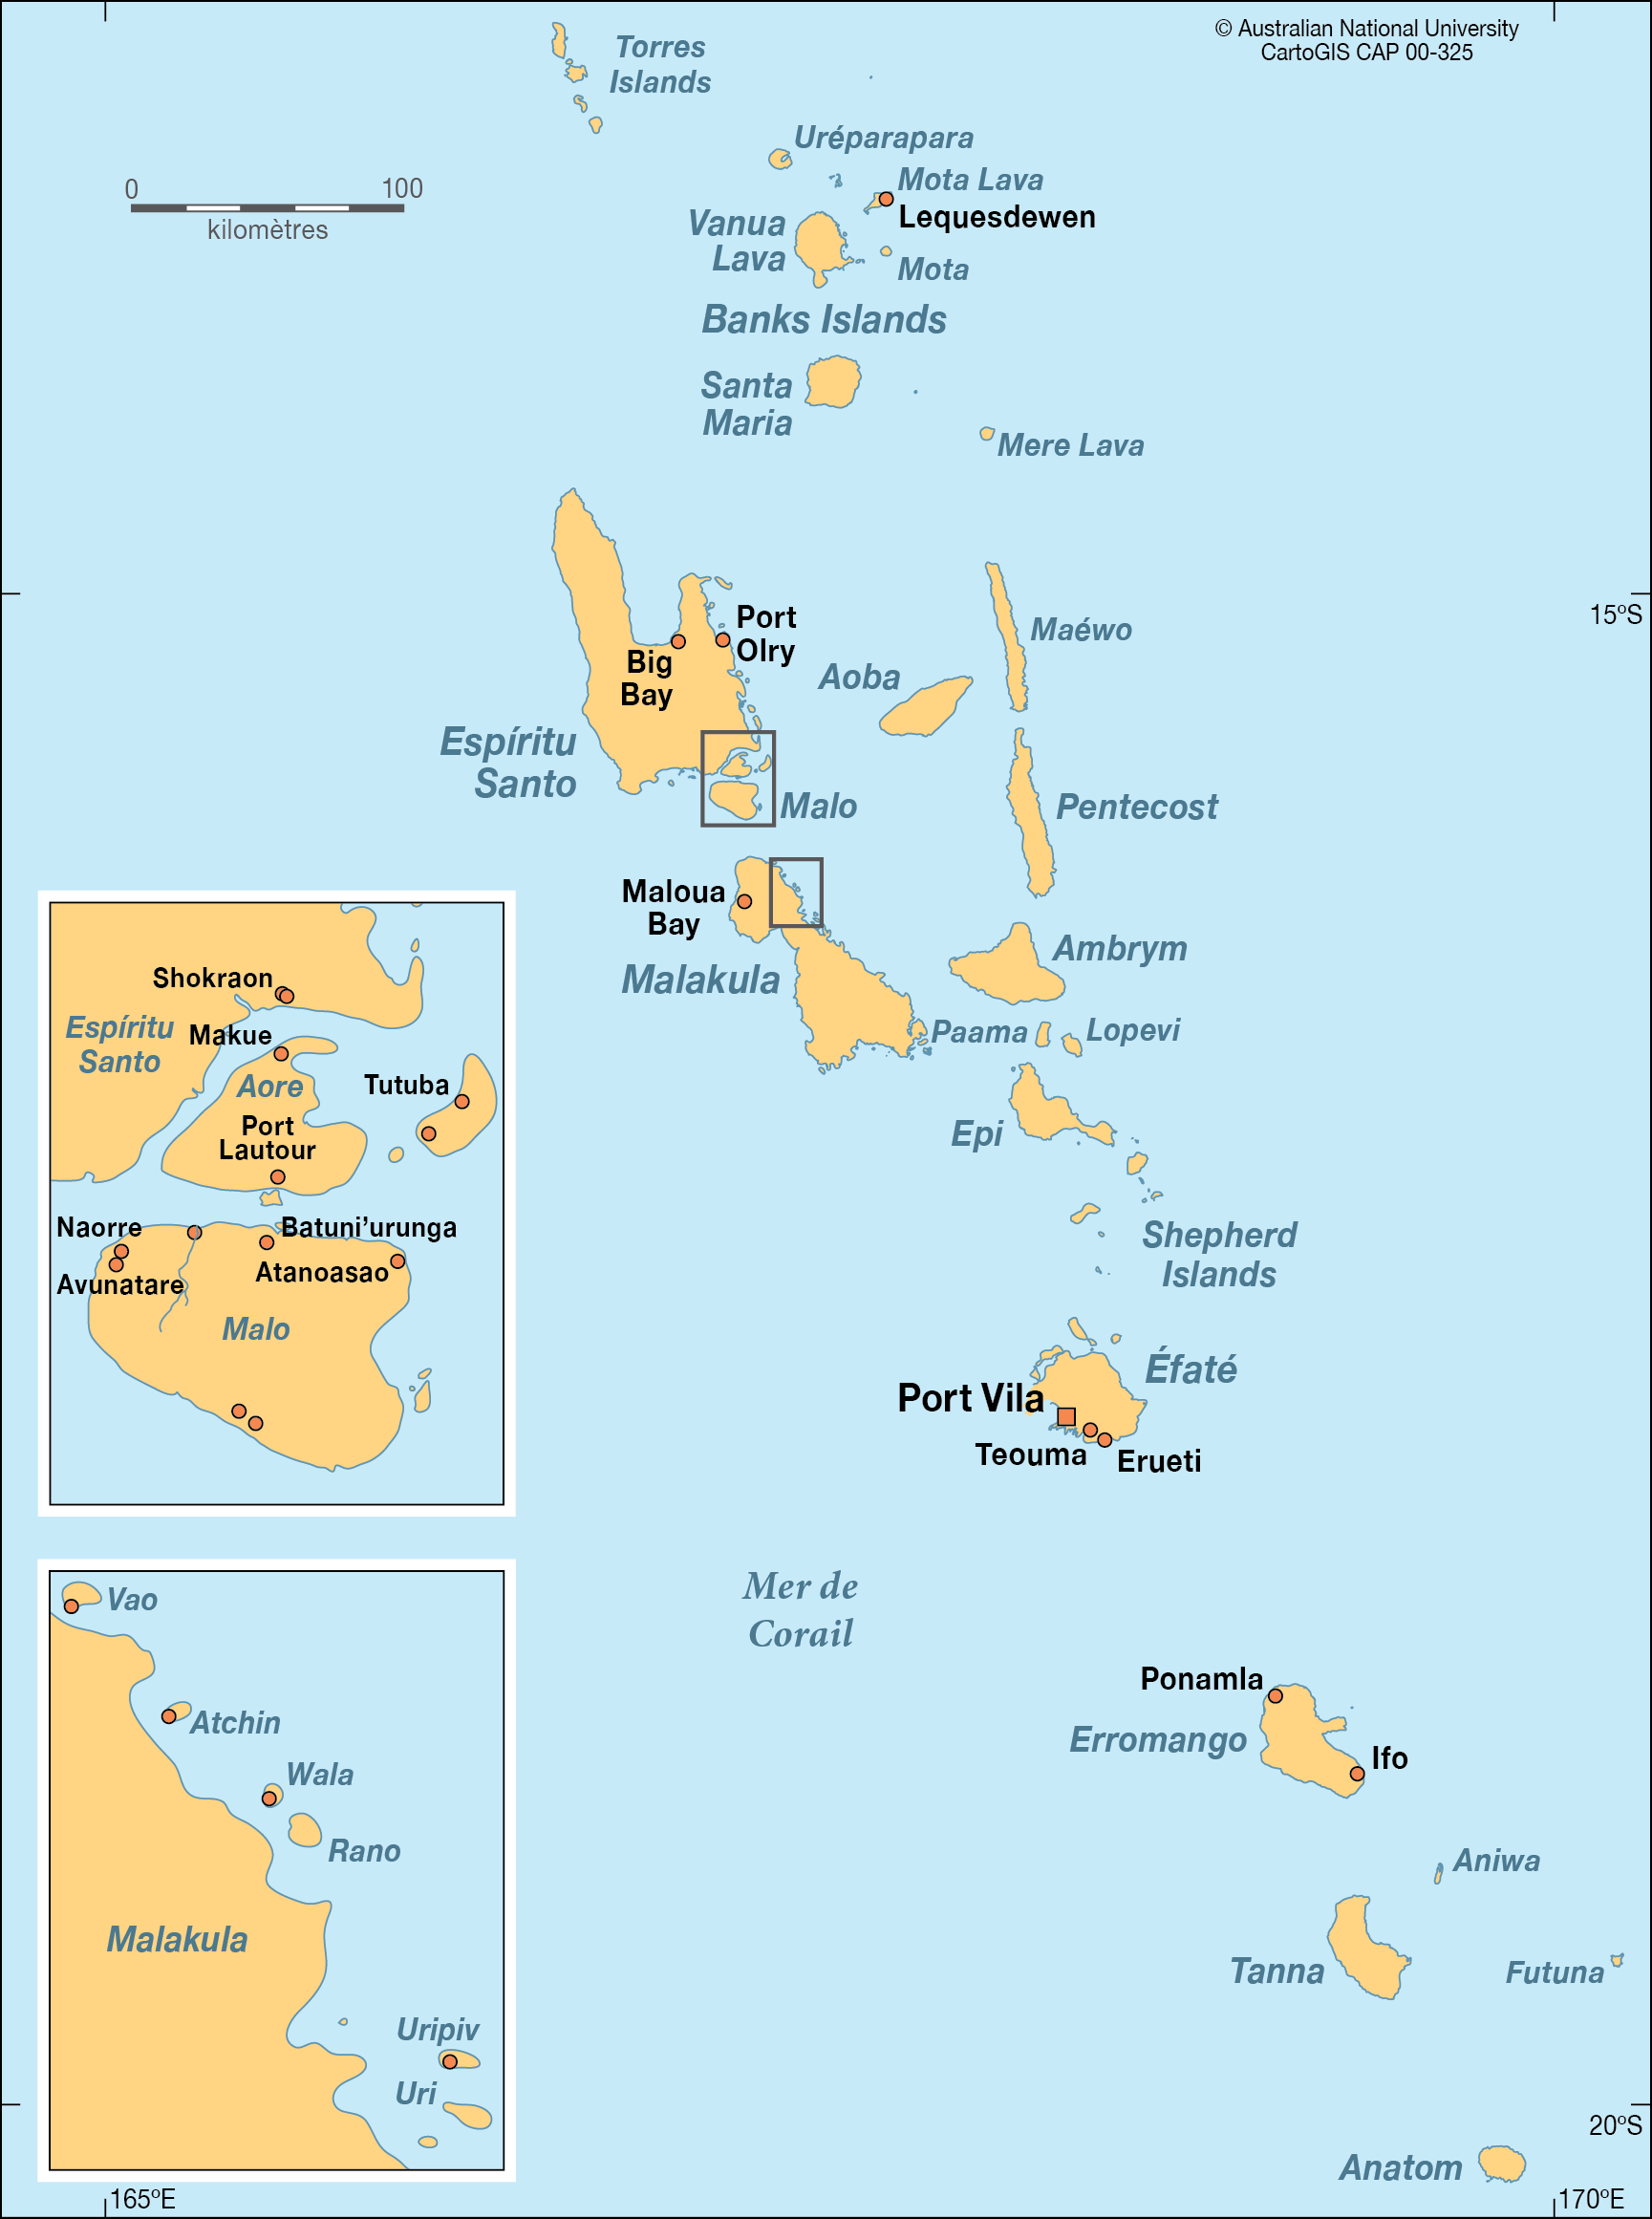 Map Of Vanuatu Vanuatu   CartoGIS Services Maps Online   ANU